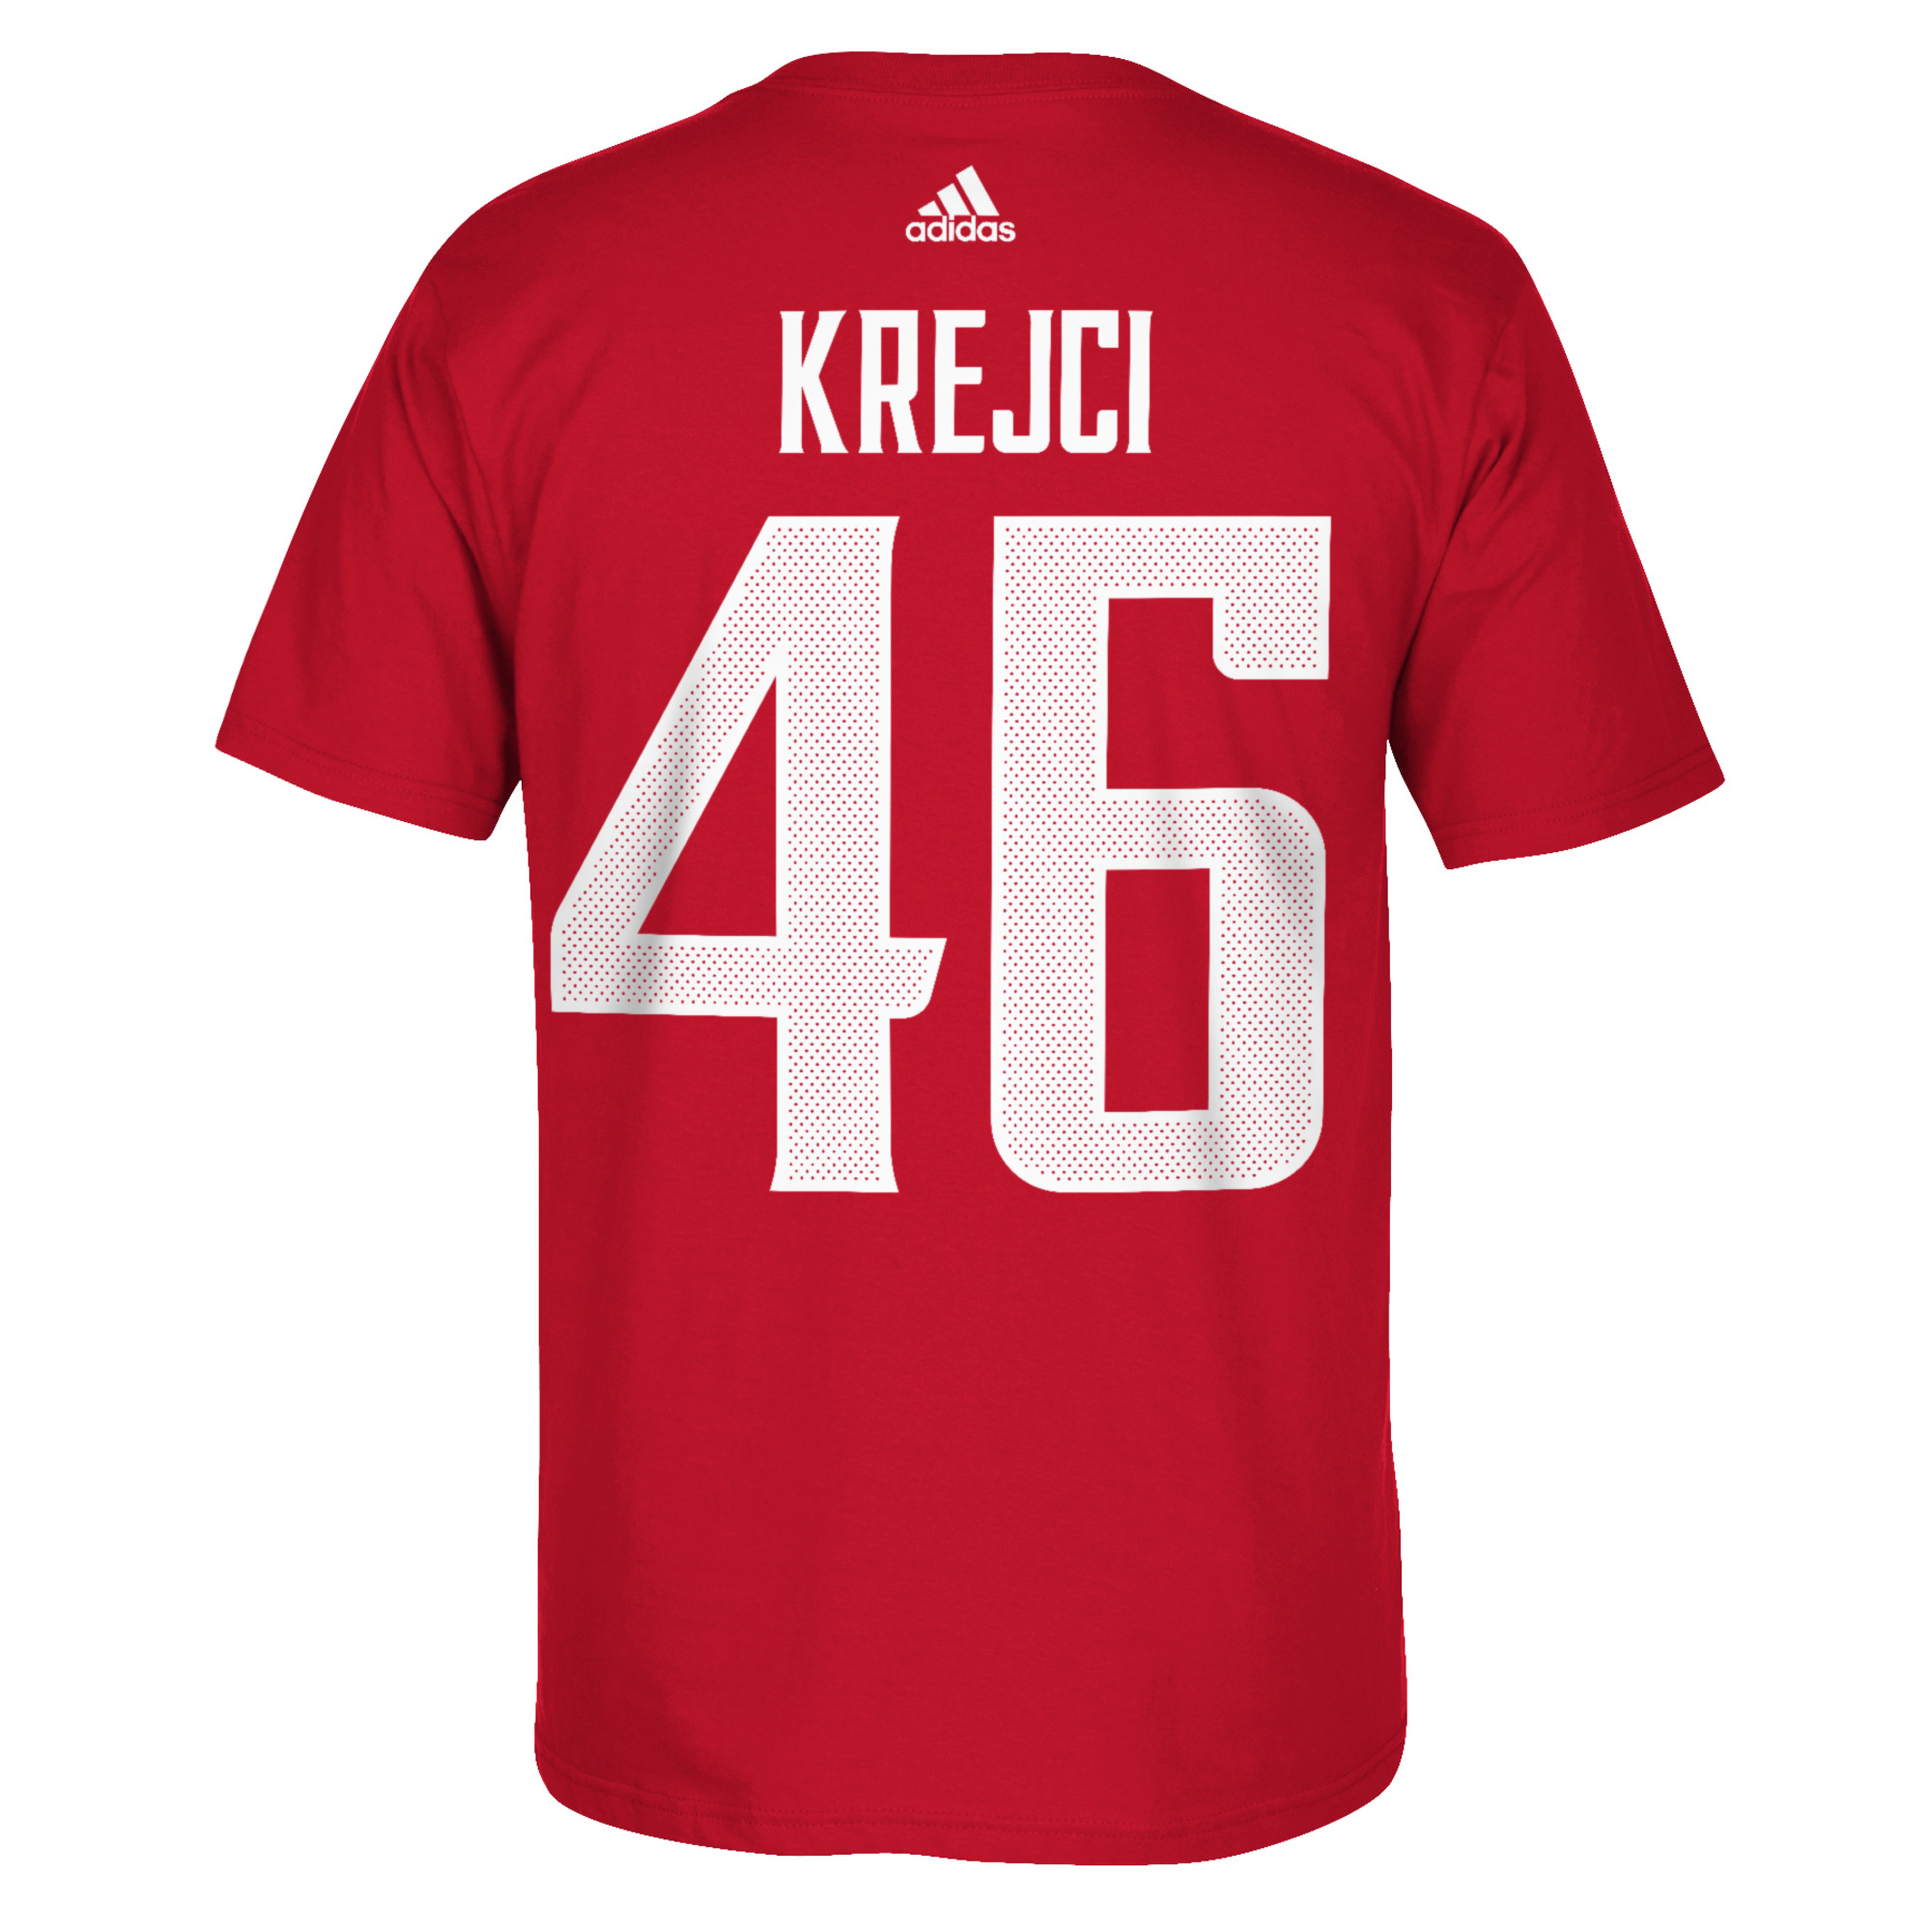 Team Czech Republic 2016 World Cup of Hockey Name & Number T-Shirt - David Krejci - Mens Barva: červená, Velikost: S